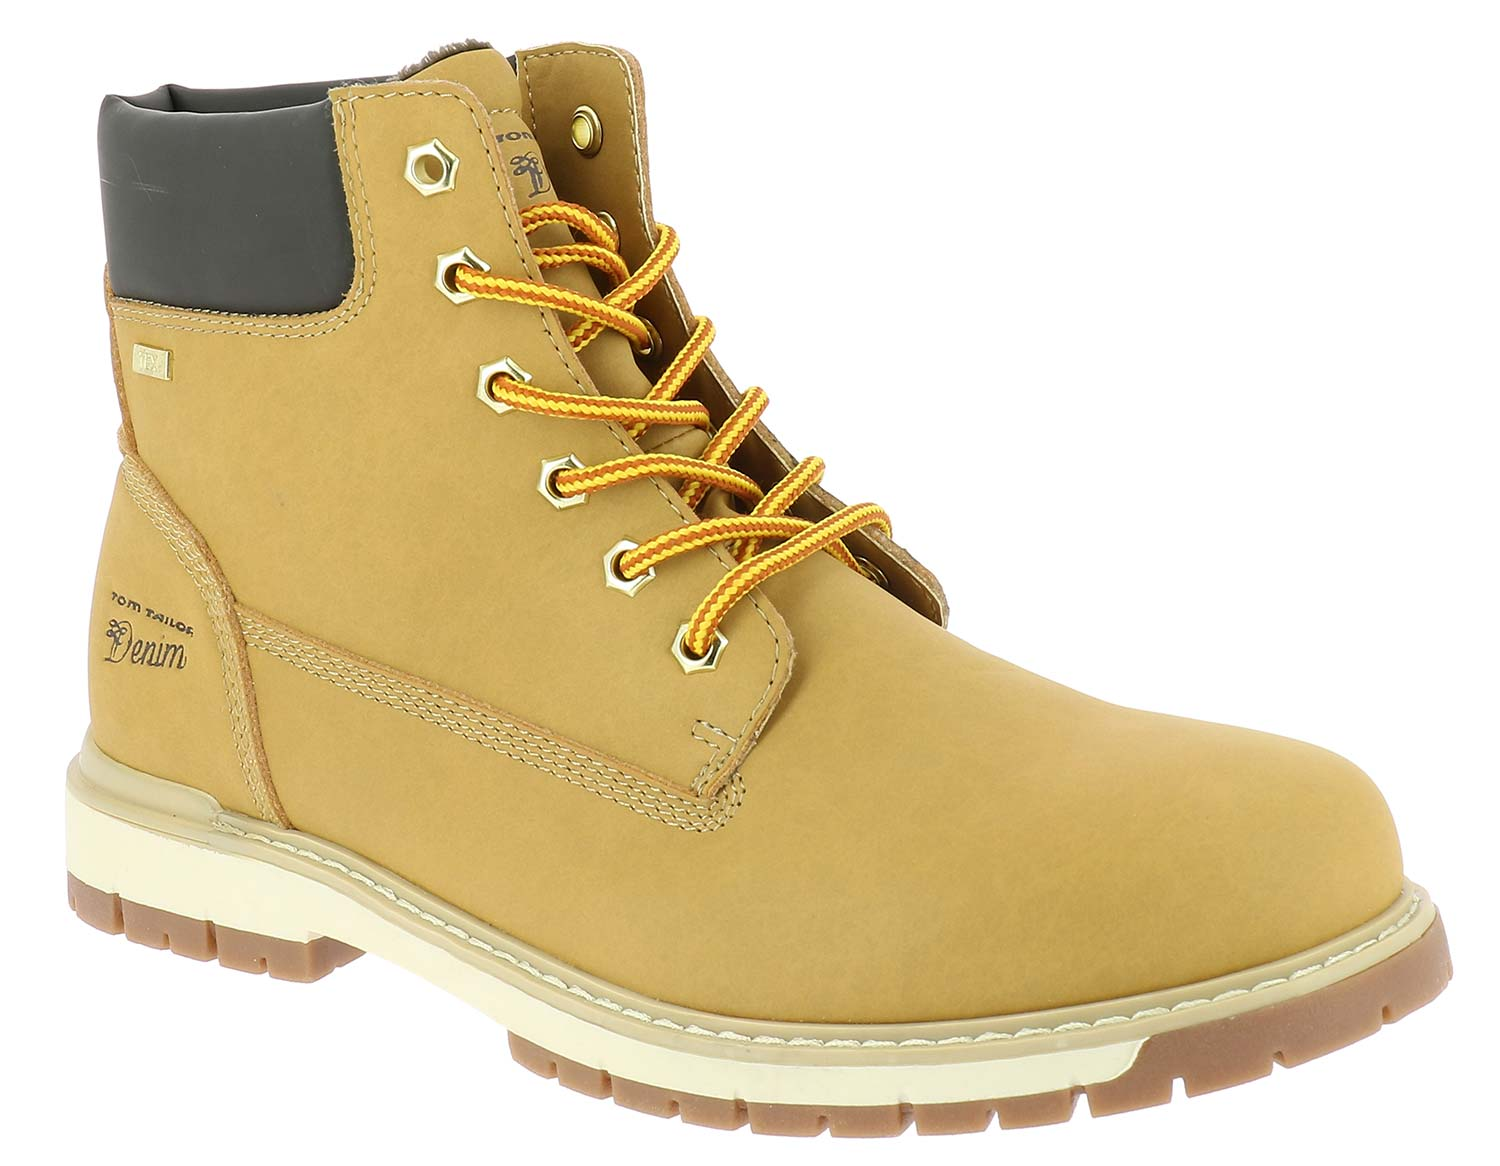 Details about Tom tailor Men's Boots Winter Shoes 5885401 Yellow Black New